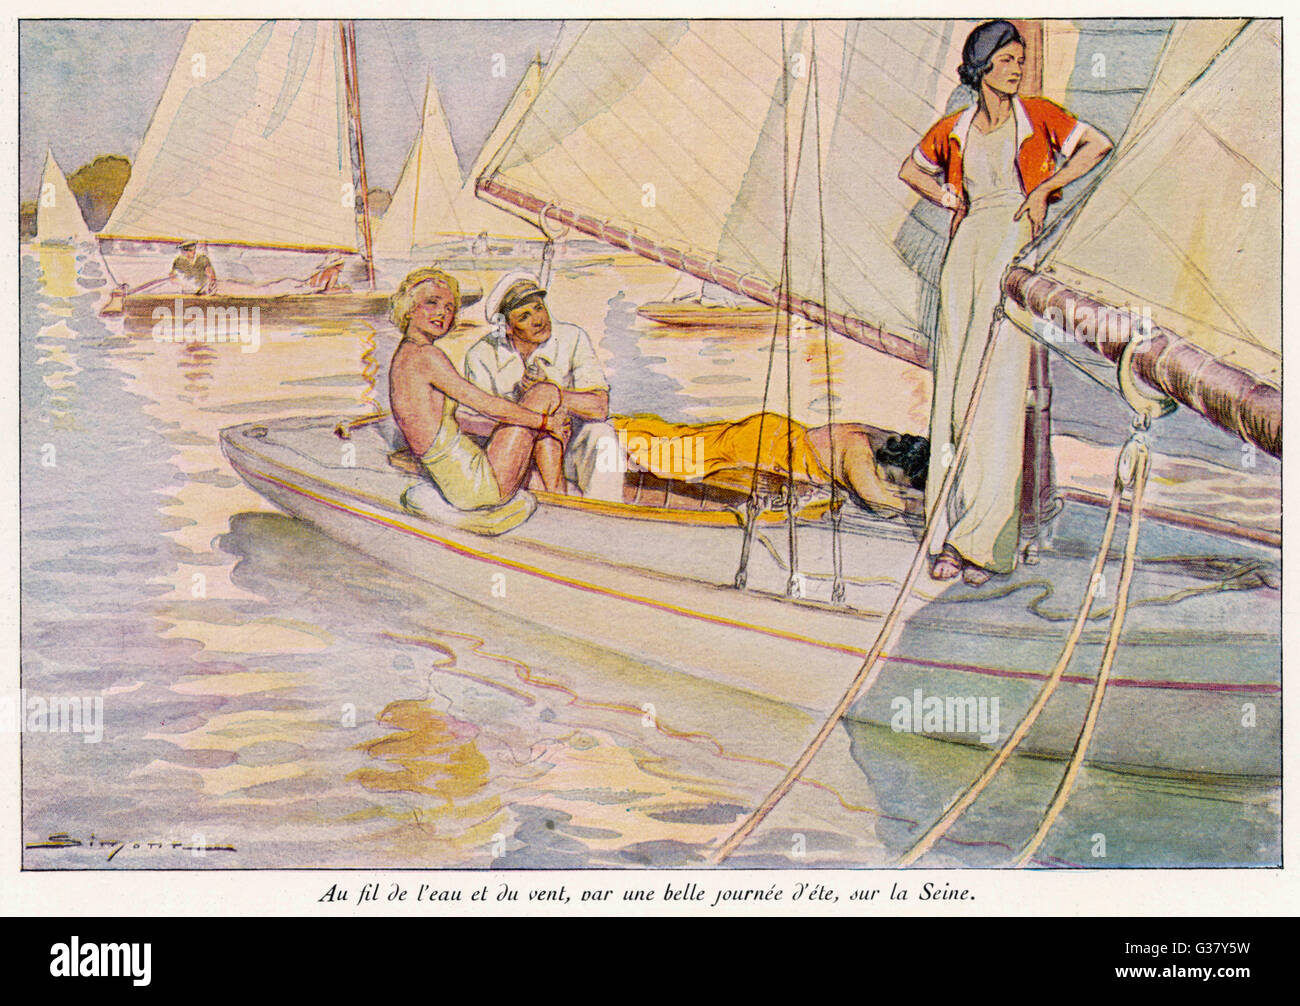 A yachting scene.     Date: 1934 - Stock Image